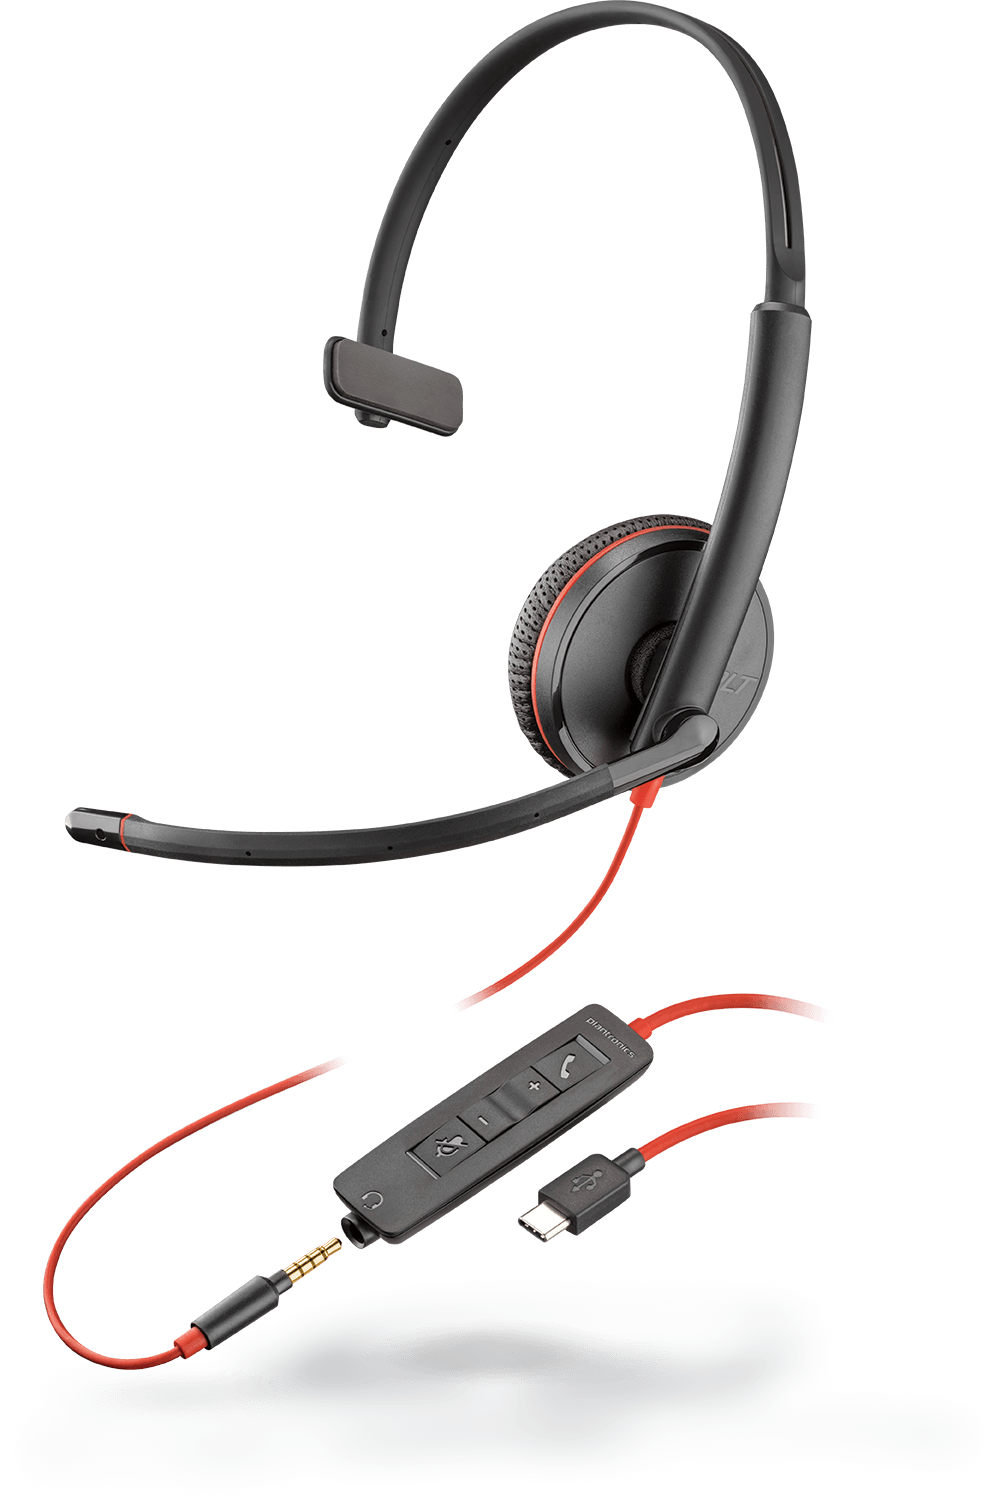 Earbud clip round. Plantronics products headsets headphones